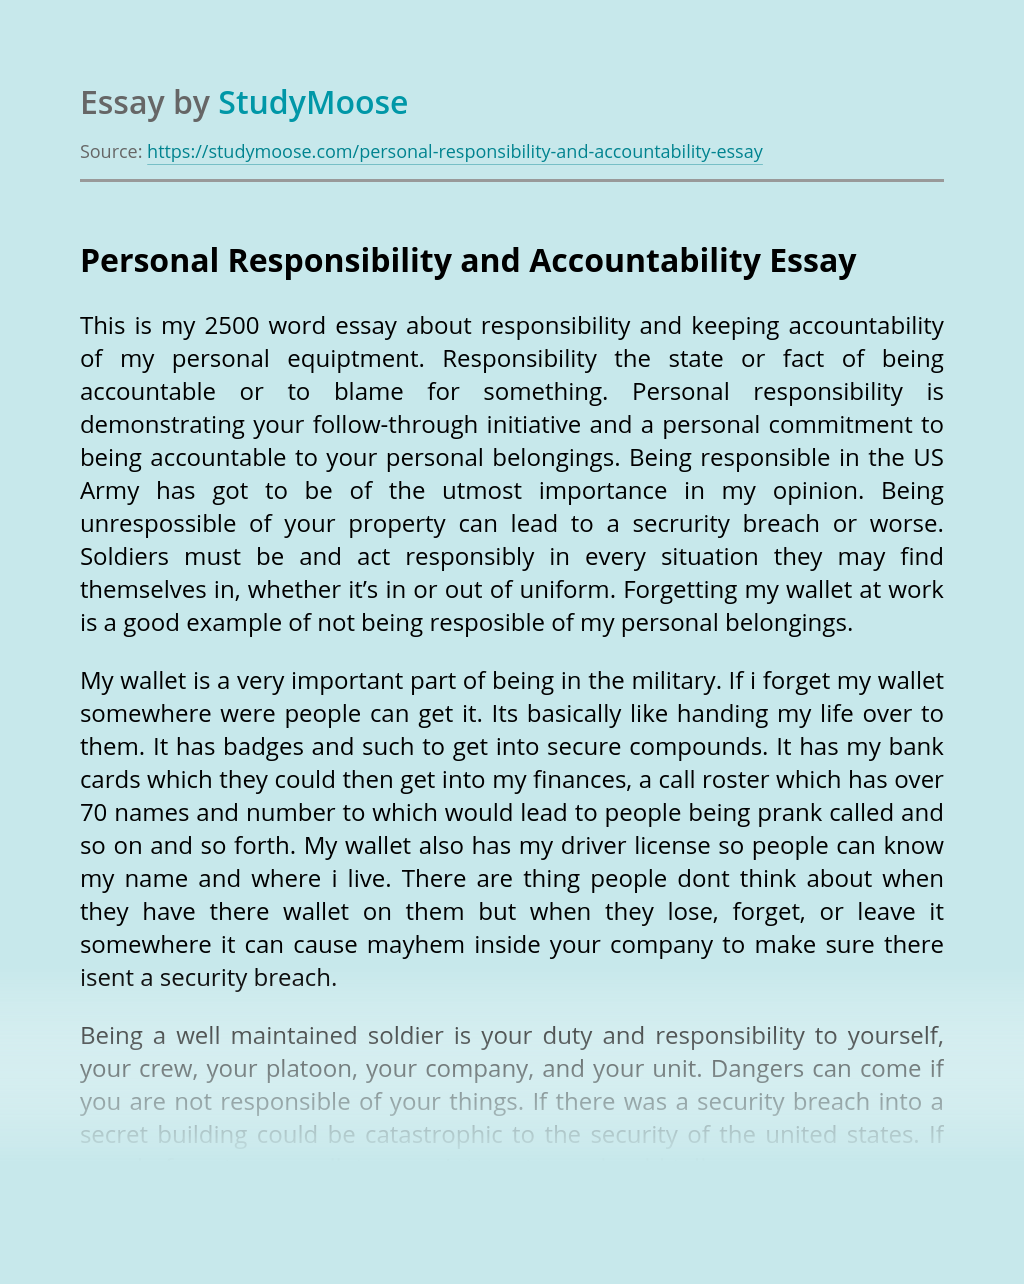 Personal Responsibility and Accountability